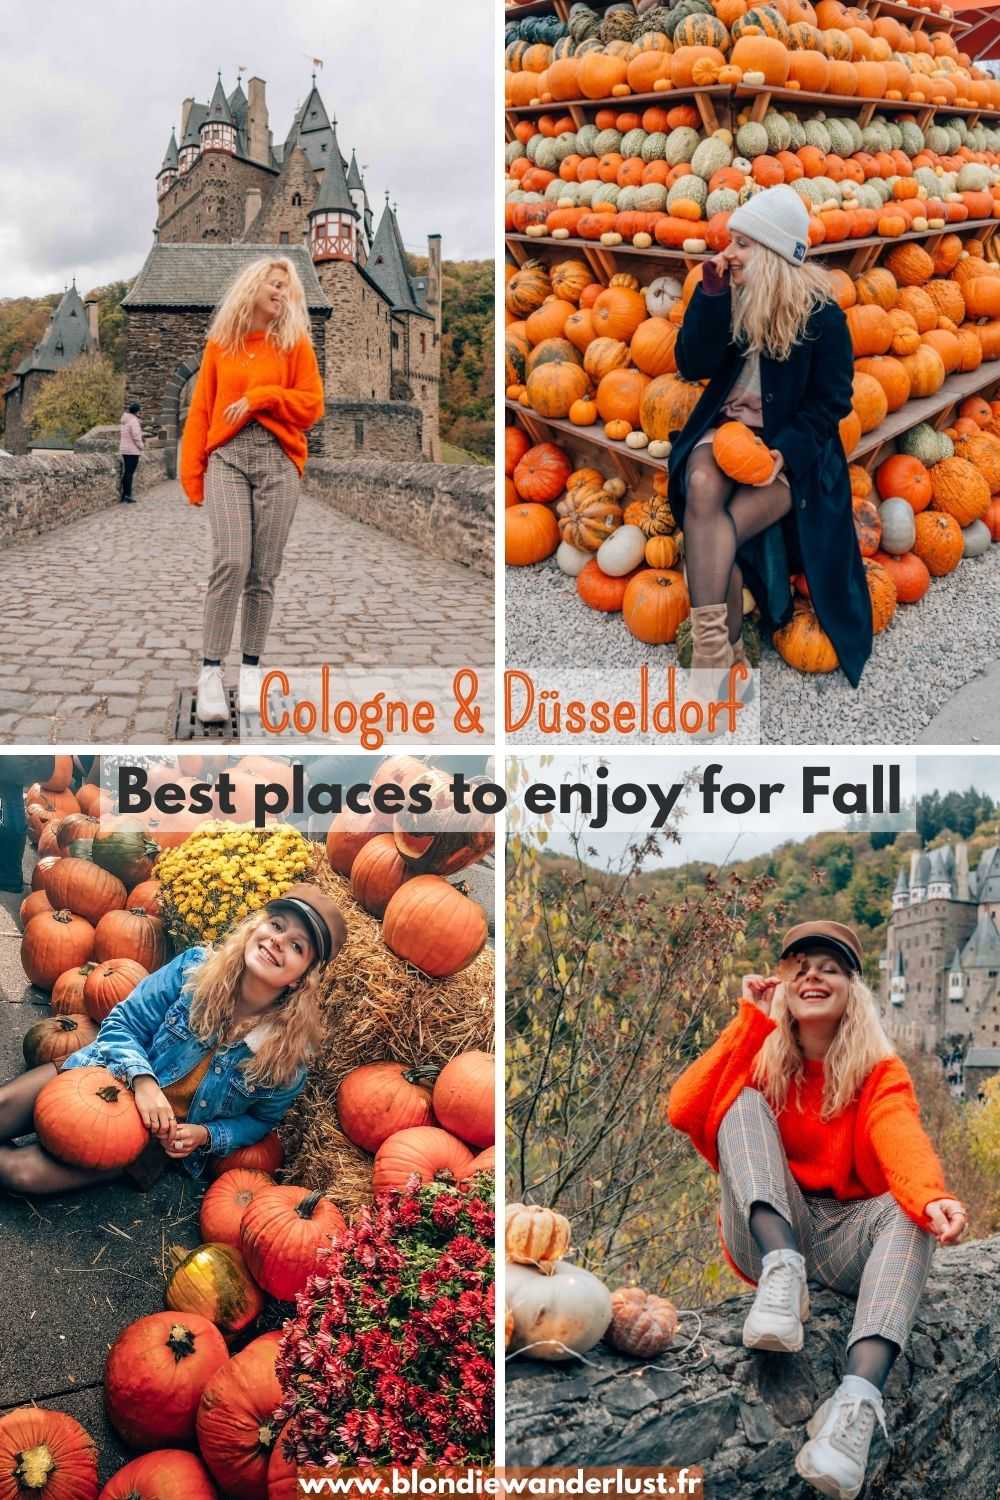 The best places to enjoy for Fall near Cologne & Düsseldorf